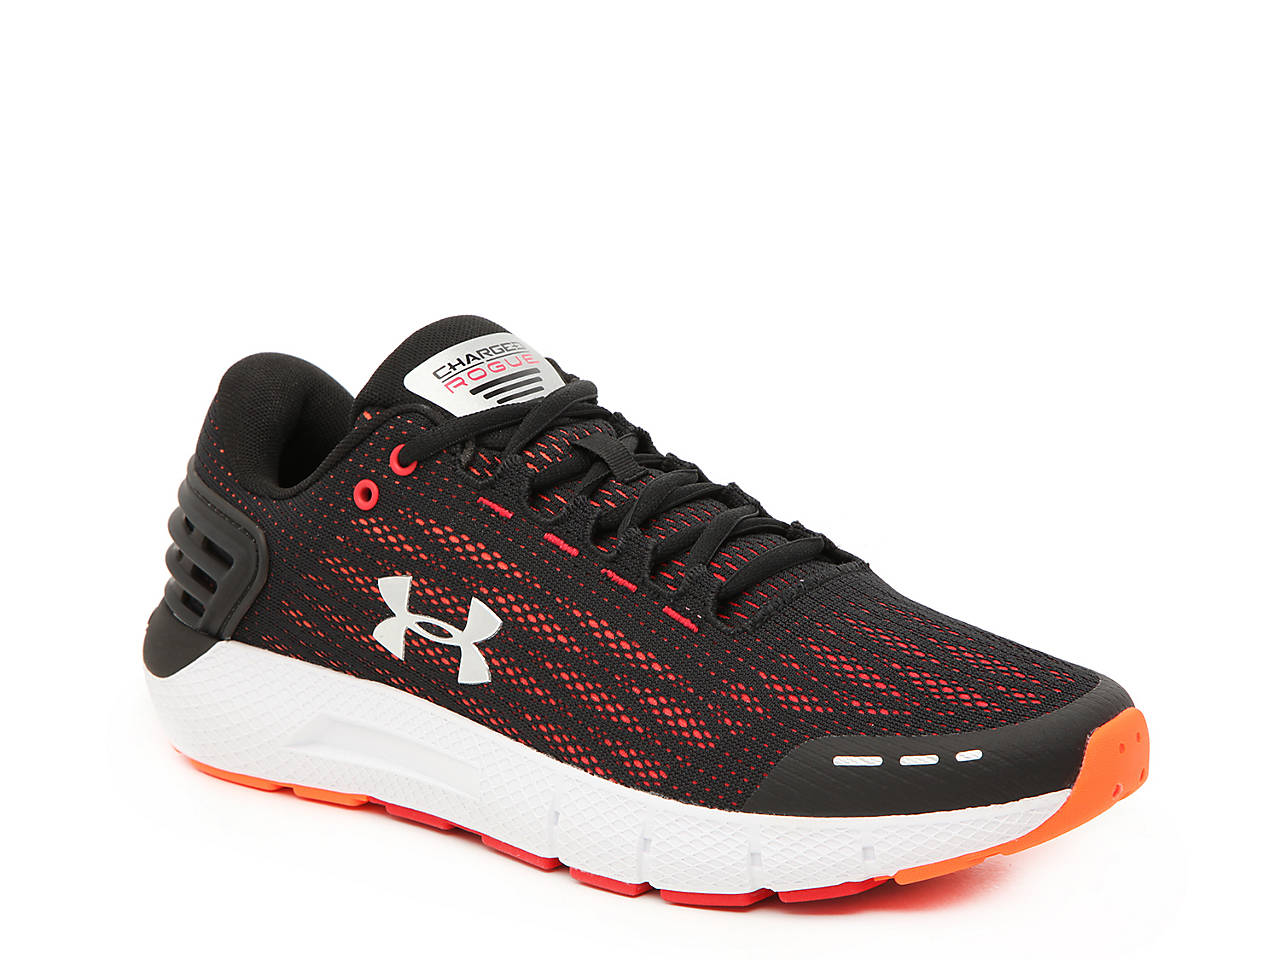 286e52268b9f Under Armour Charged Rogue Lightweight Running Shoe - Men s Men s ...